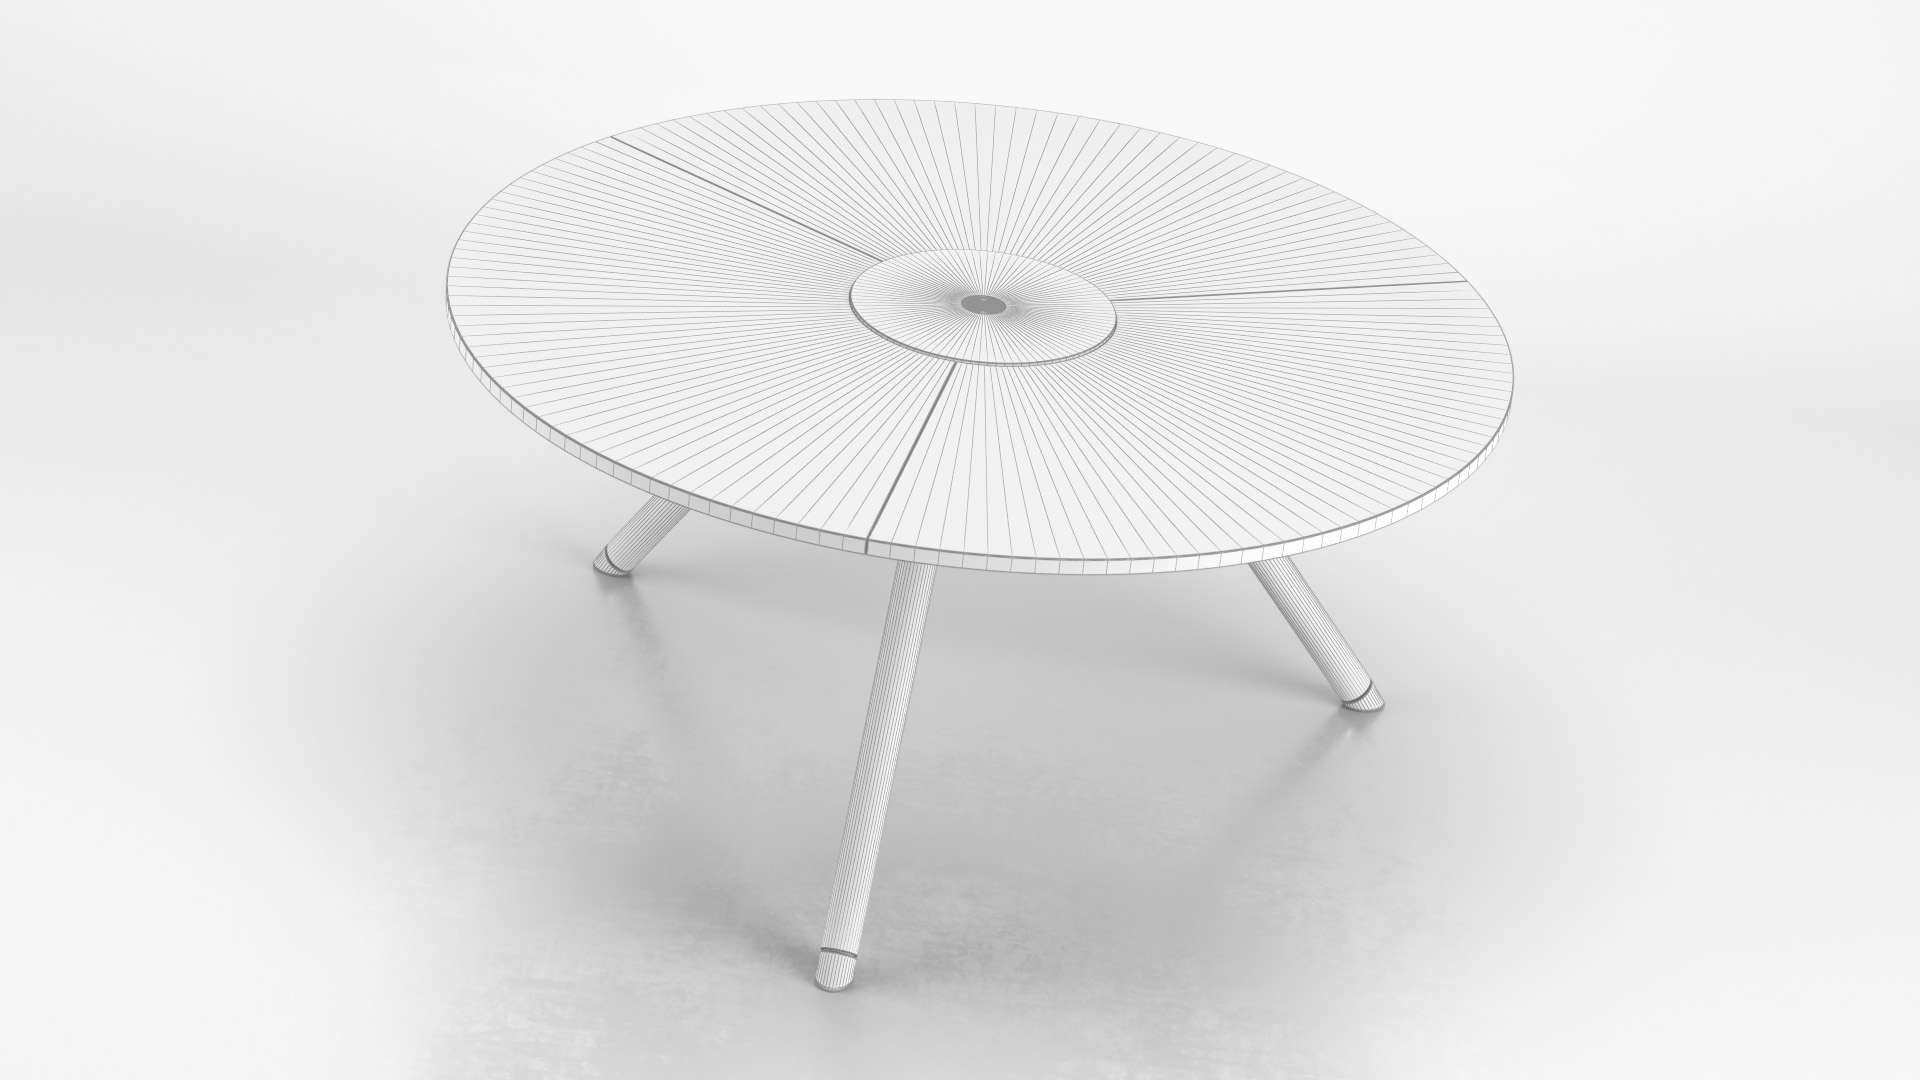 Zenith_Table_WhiteSet_01_wire_0003